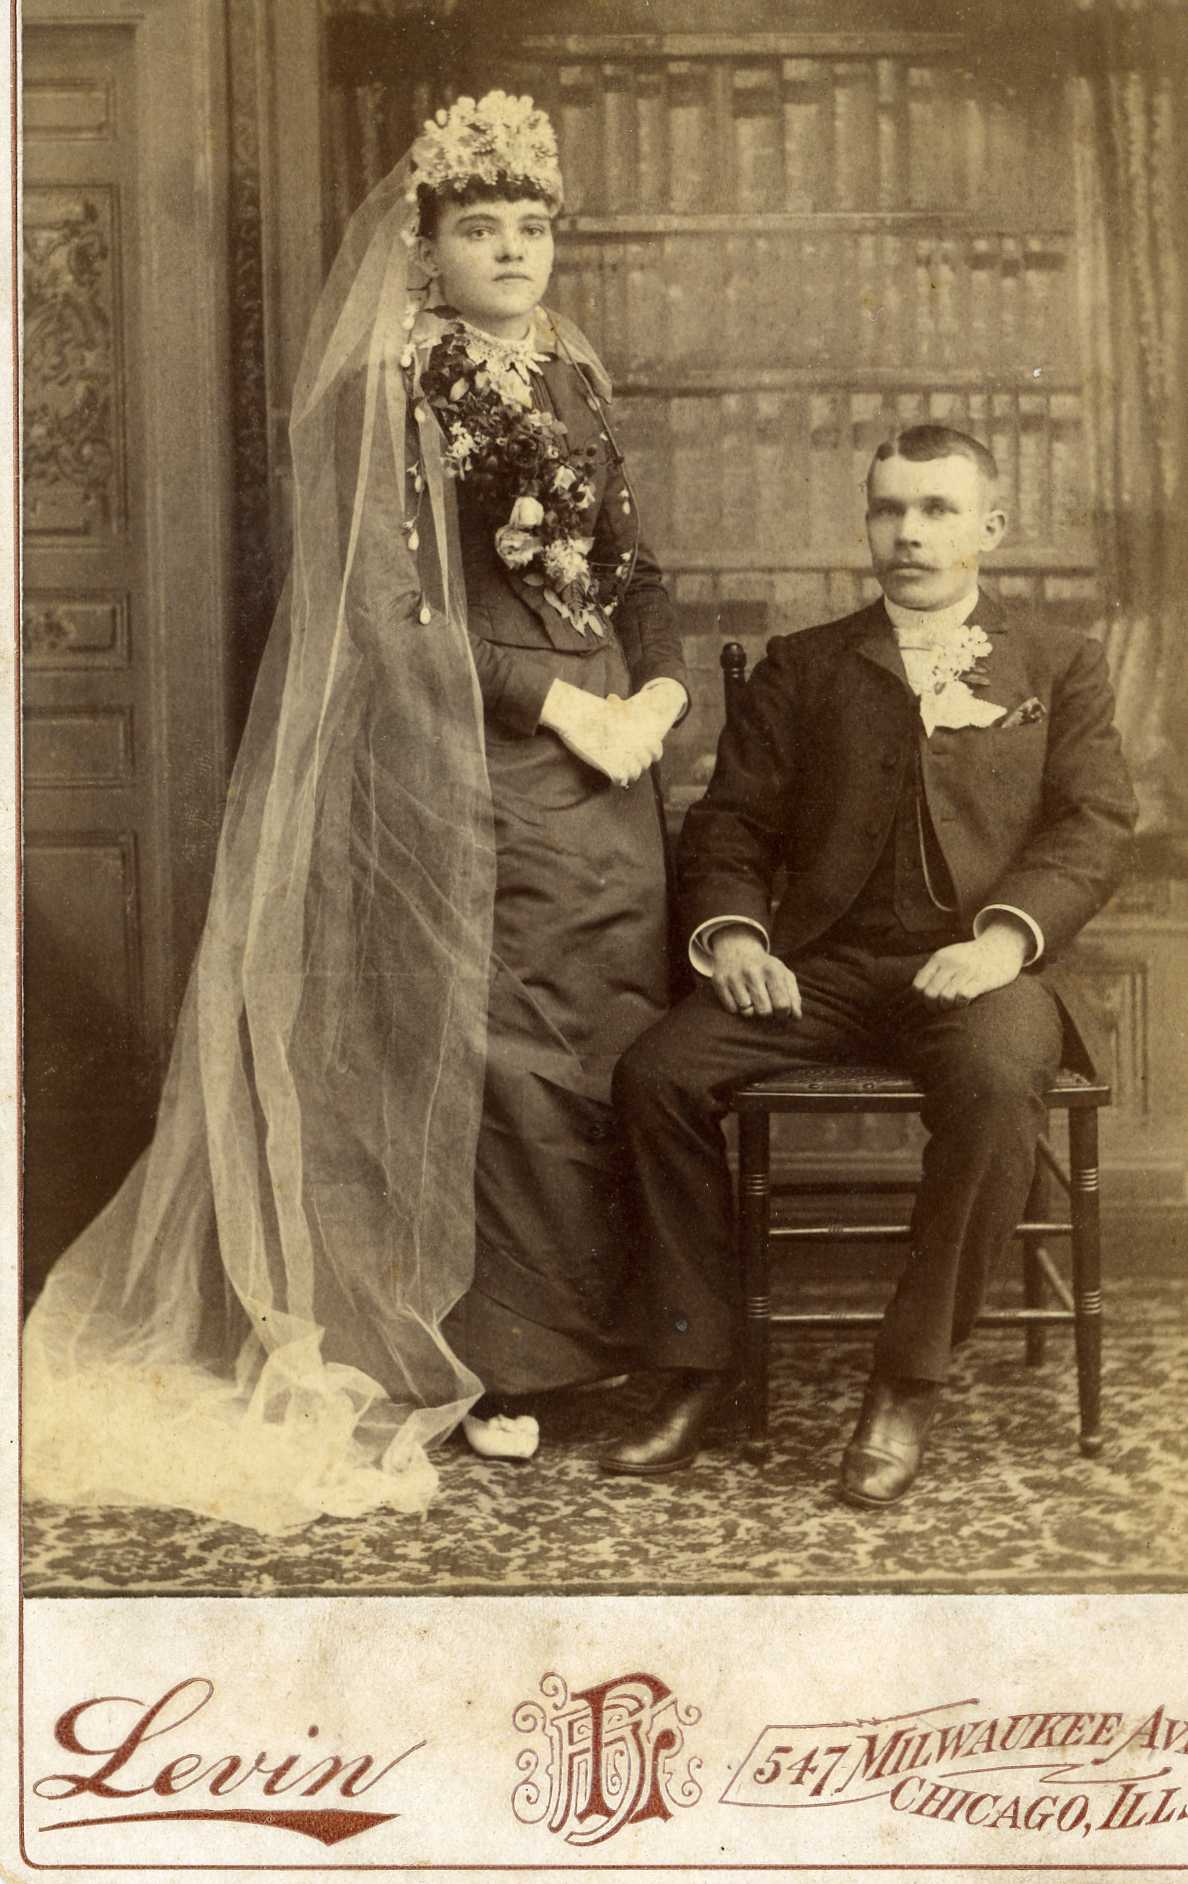 Victorian wedding bonnet who were they todays photo is also courtesy of ray jackson it shows a lovely cabinet card sized wedding portrait of a young woman and her husband junglespirit Images